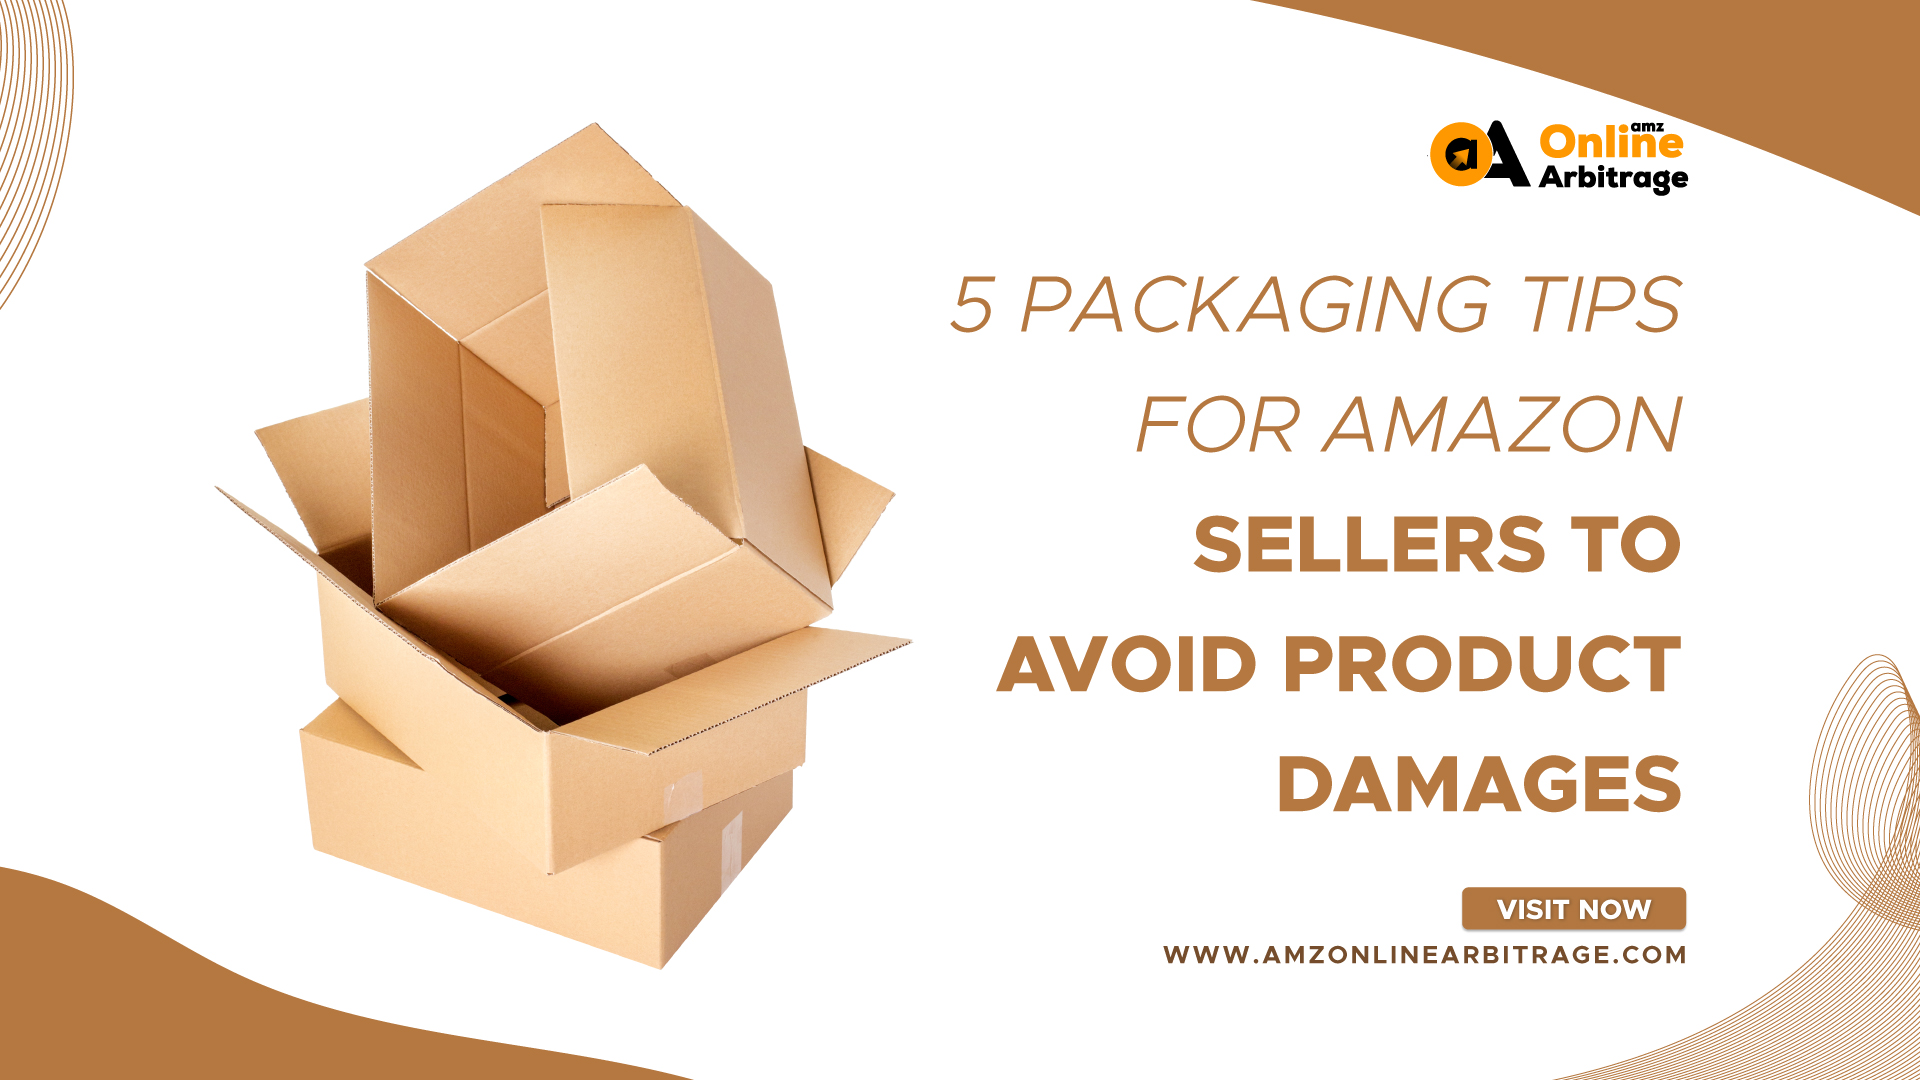 5 PACKAGING TIPS FOR AMAZON SELLERS TO AVOID PRODUCT DAMAGES